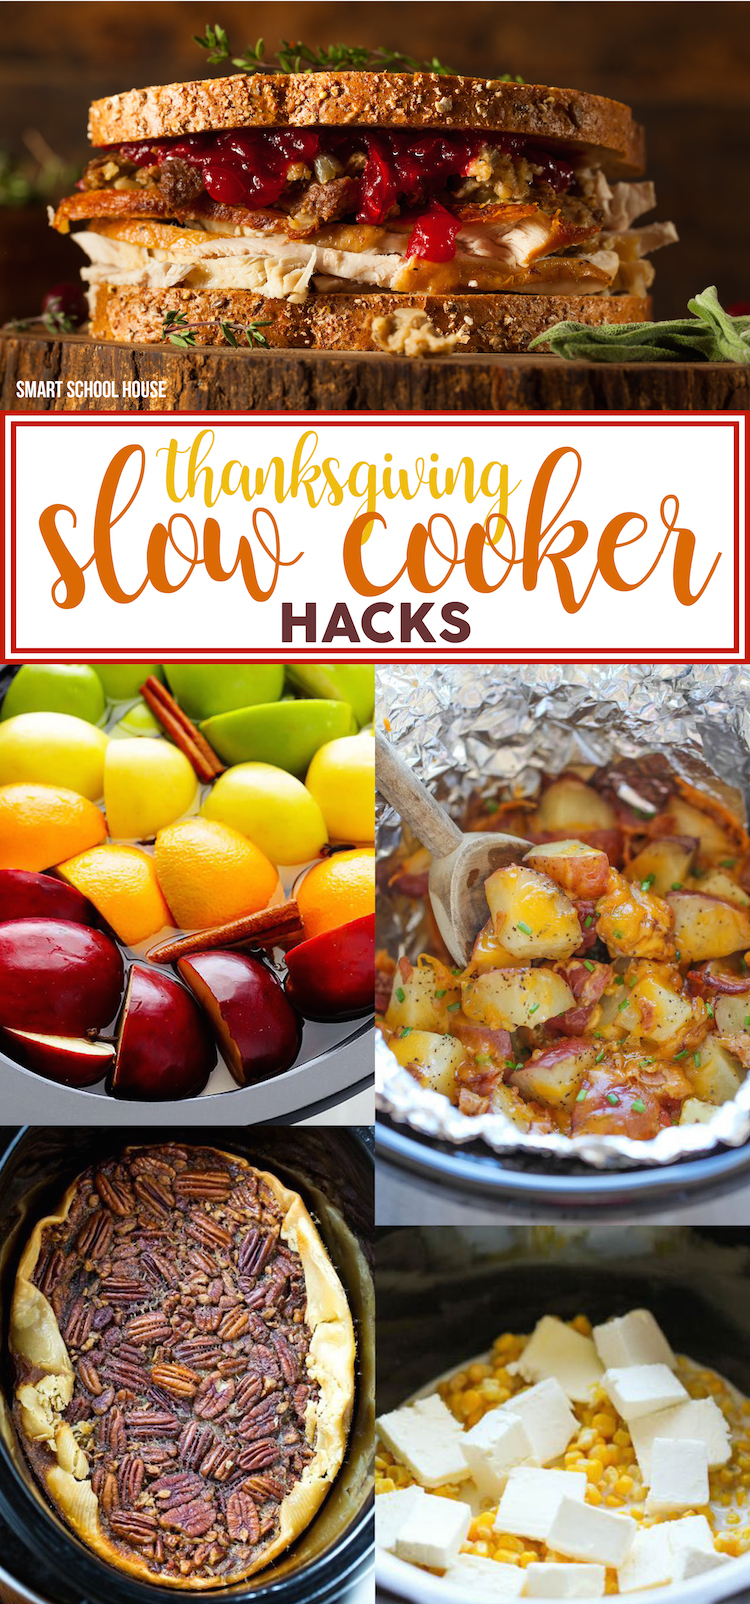 Thanksgiving Slow Cooker Hacks - take it easy this holiday with these crock pot Thanksgiving recipes that will save your life in the kitchen!